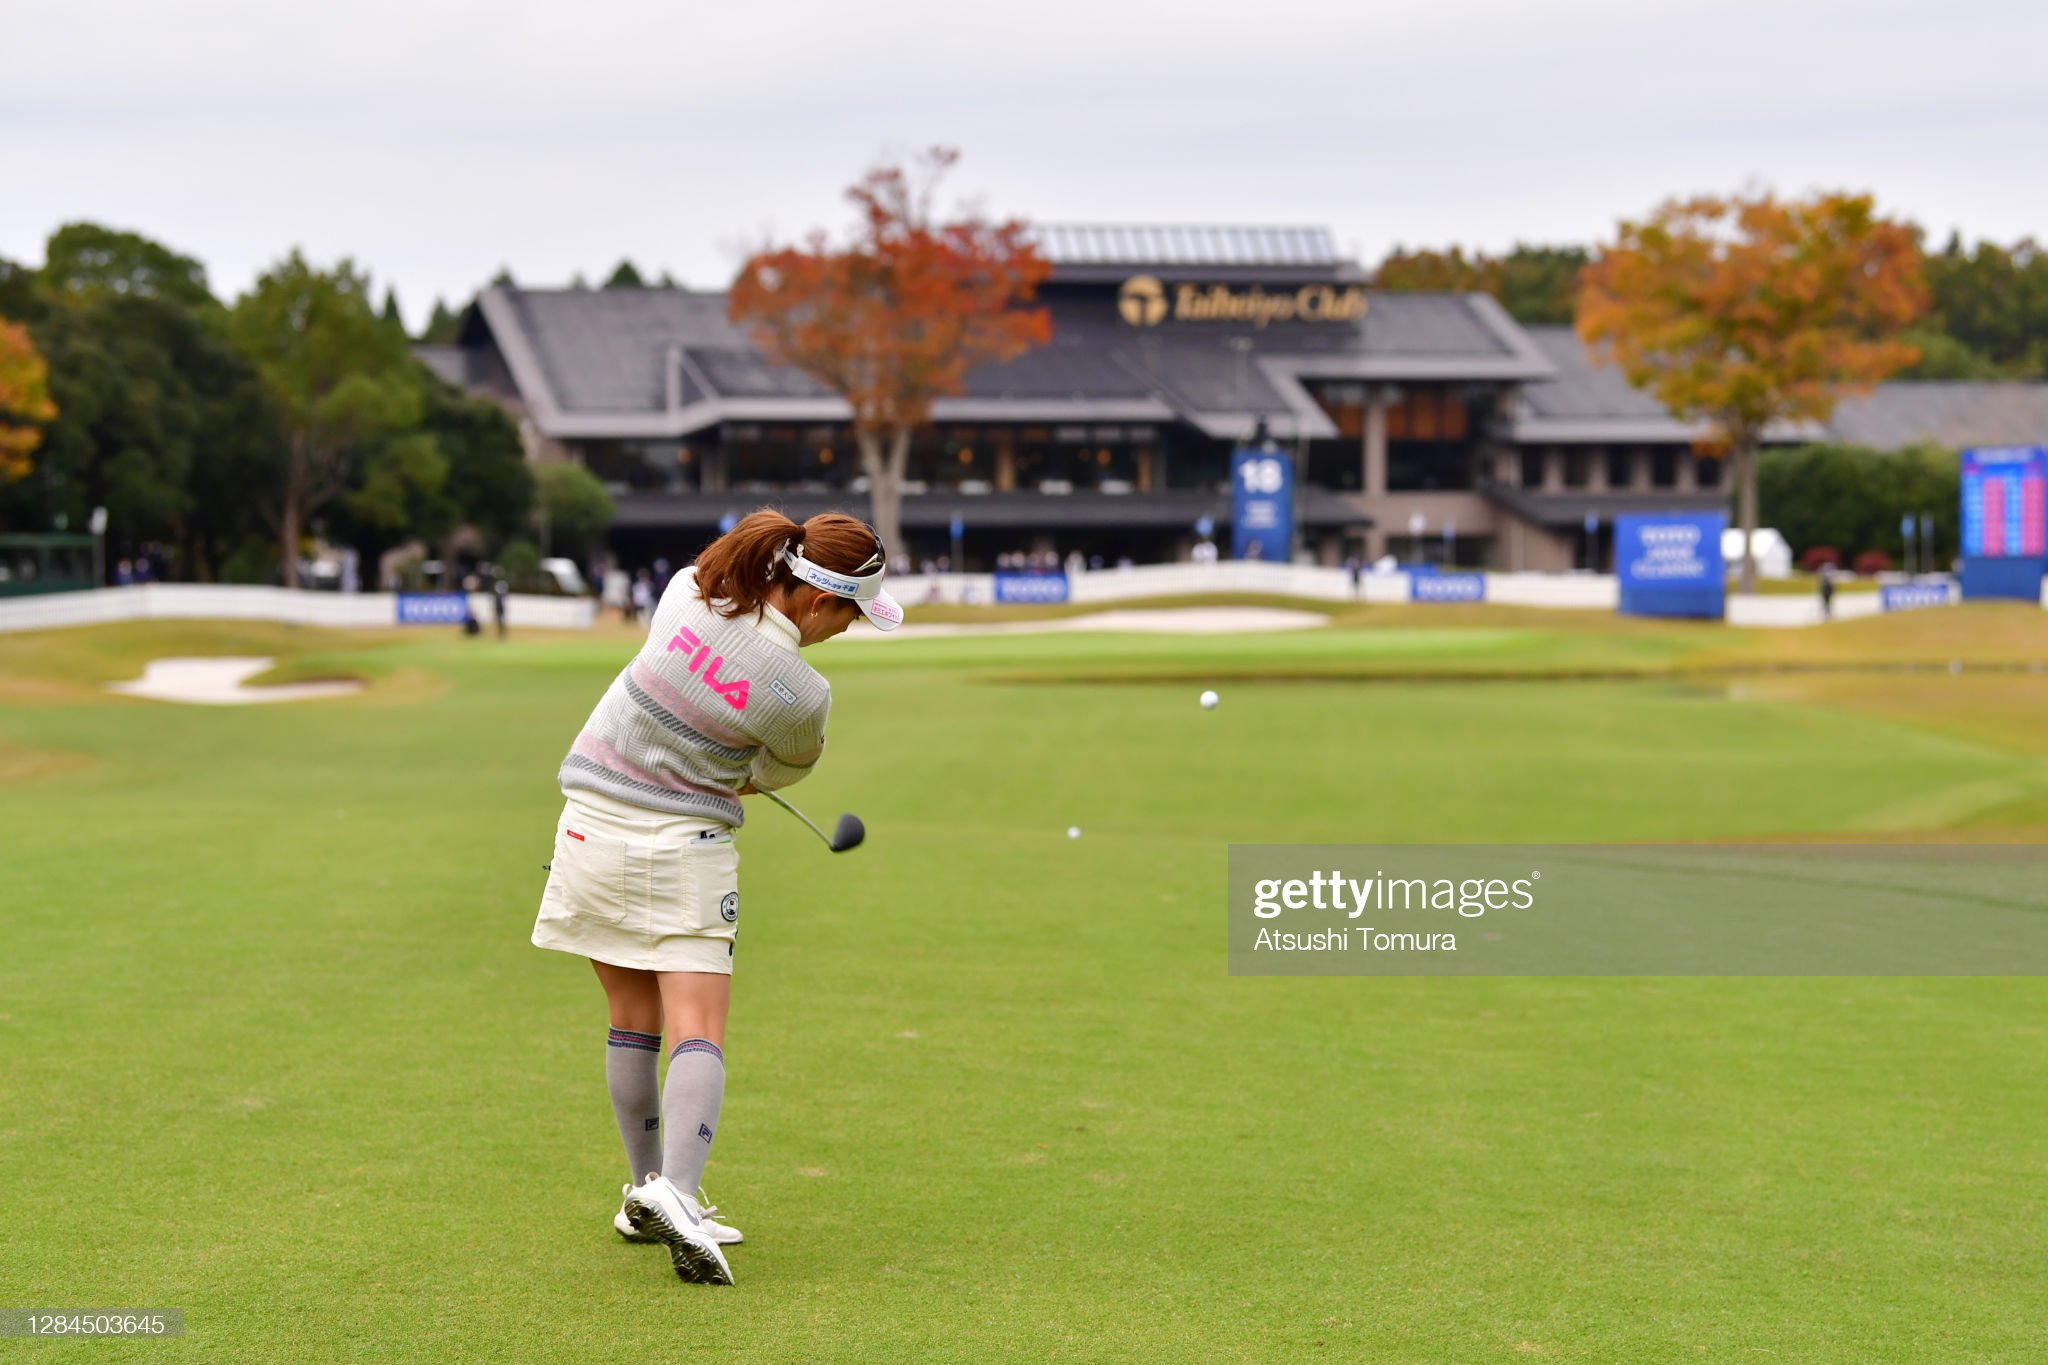 https://media.gettyimages.com/photos/ayako-kimura-of-japan-hits-her-second-shot-on-the-18th-hole-during-picture-id1284503645?s=2048x2048